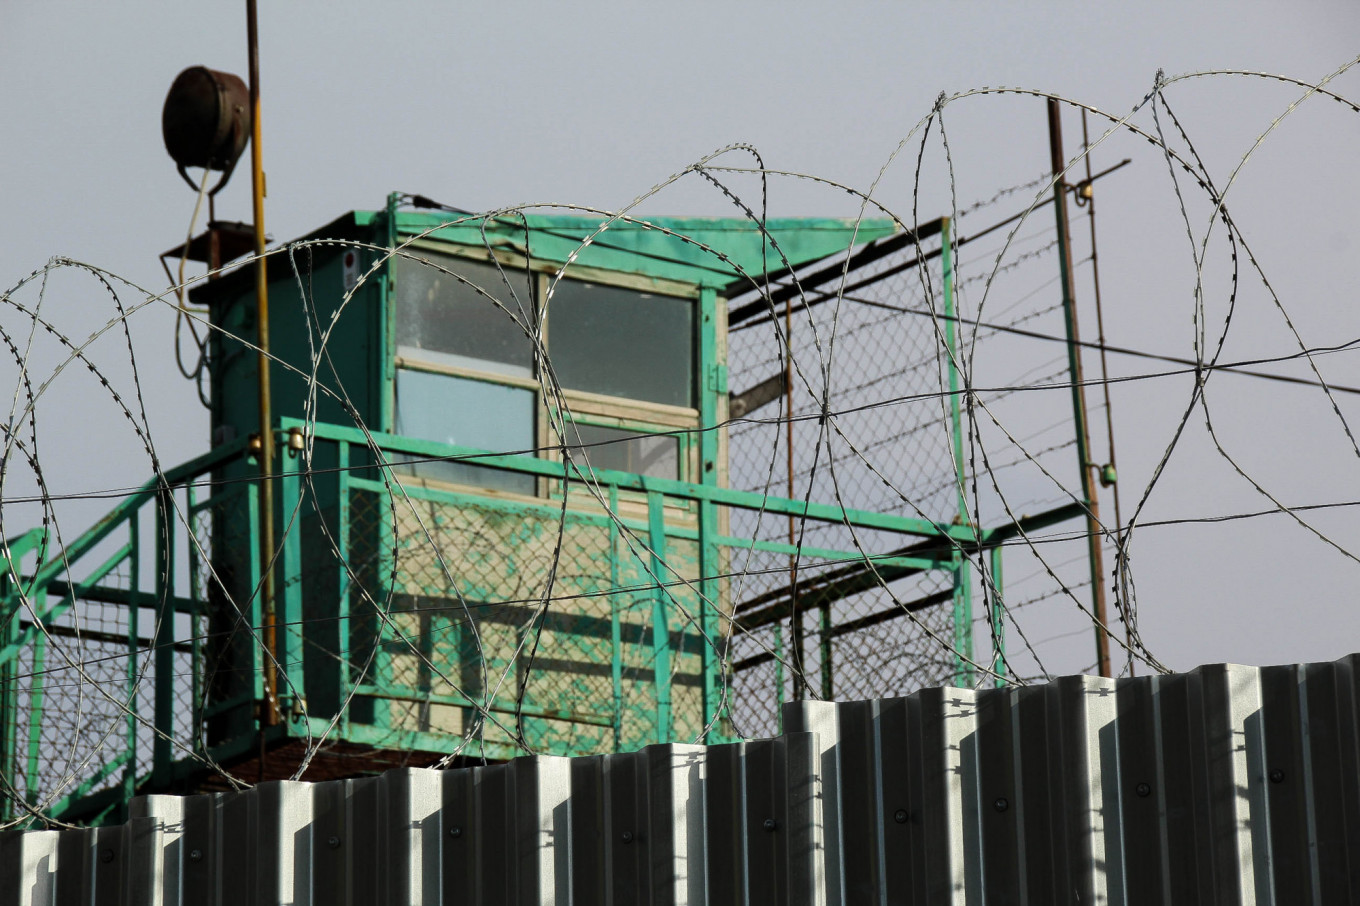 Abuse Claims Spark Riot at Russian Prison – The Moscow Times